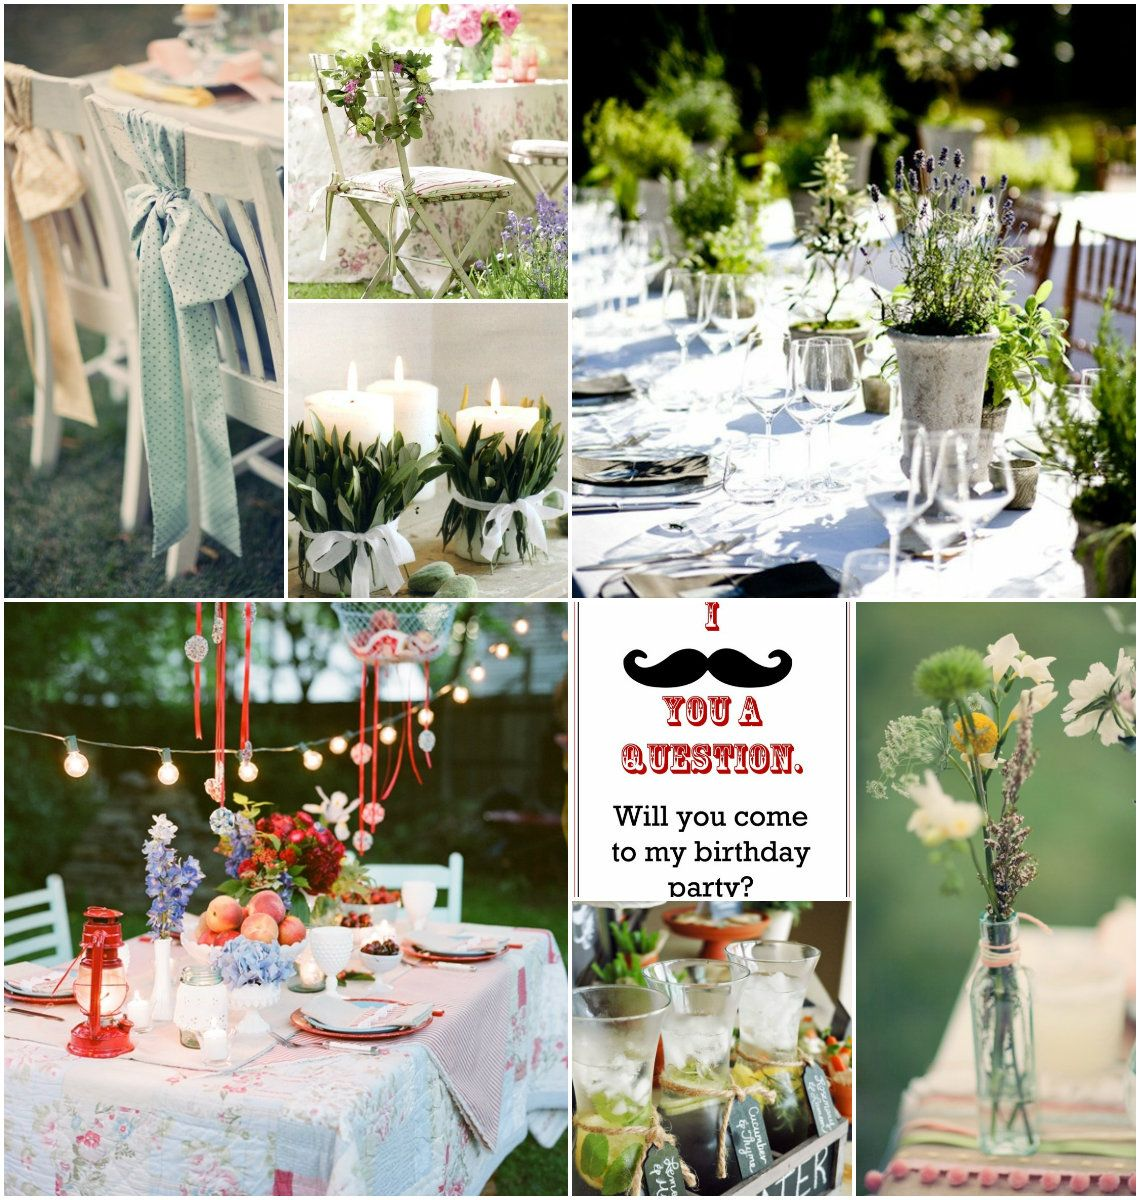 Garden Party Ideas Pinterest secret garden party Village Garden Theme Fantastic 18th Birthday Party Ideas